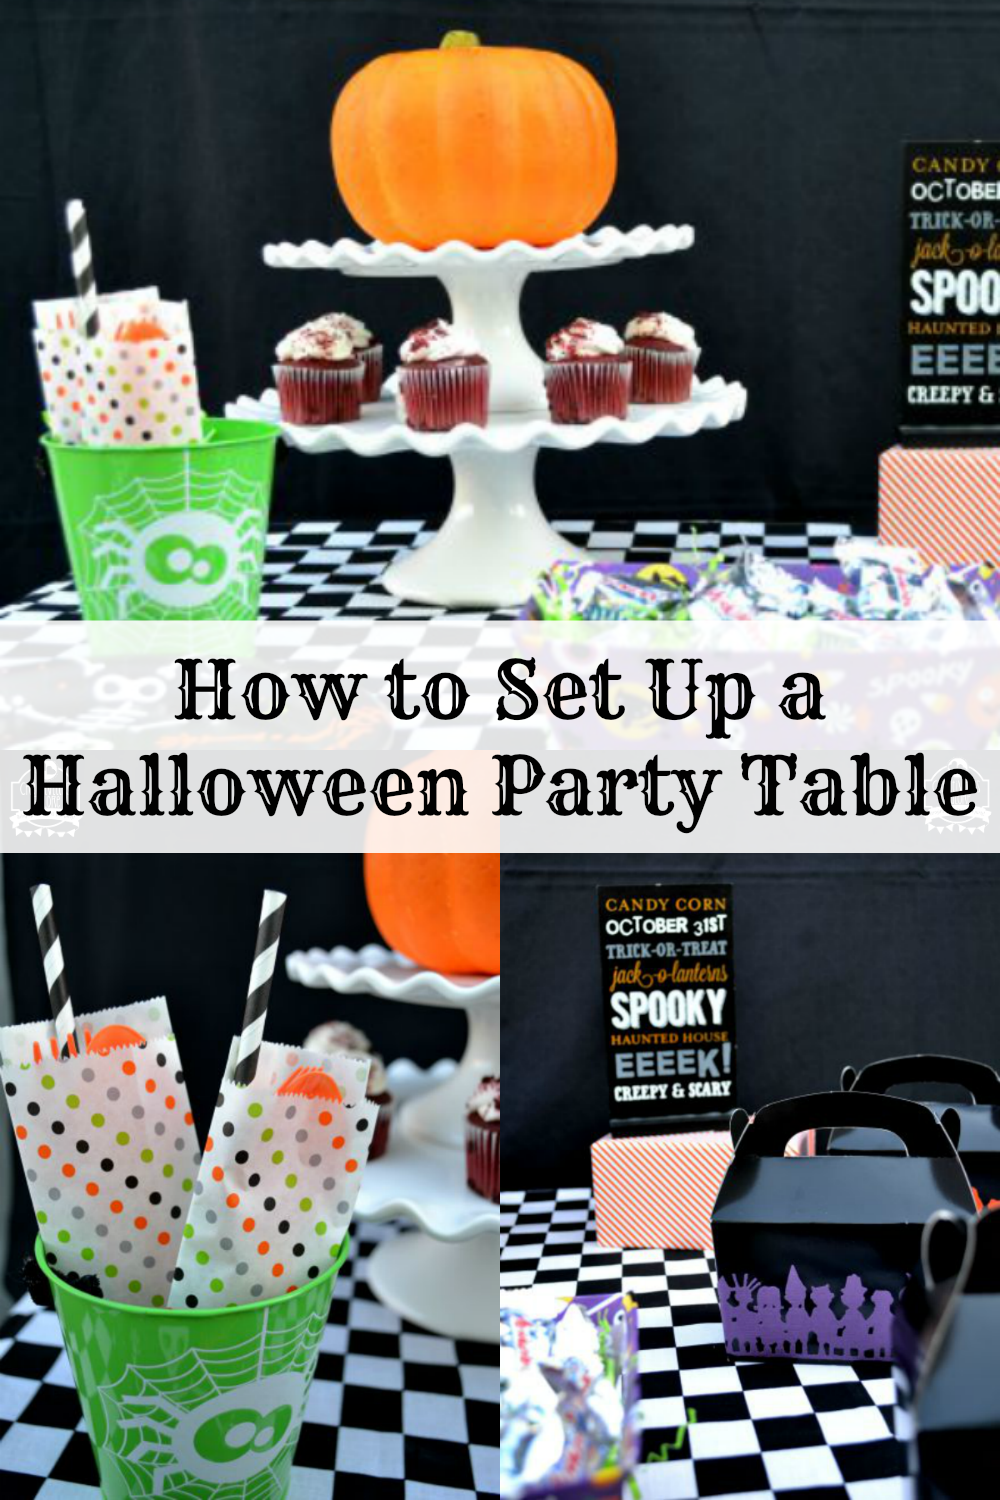 I am sharing a Halloween party table that can be set up in 10 minutes. It is the perfect set up for your next Halloween party!